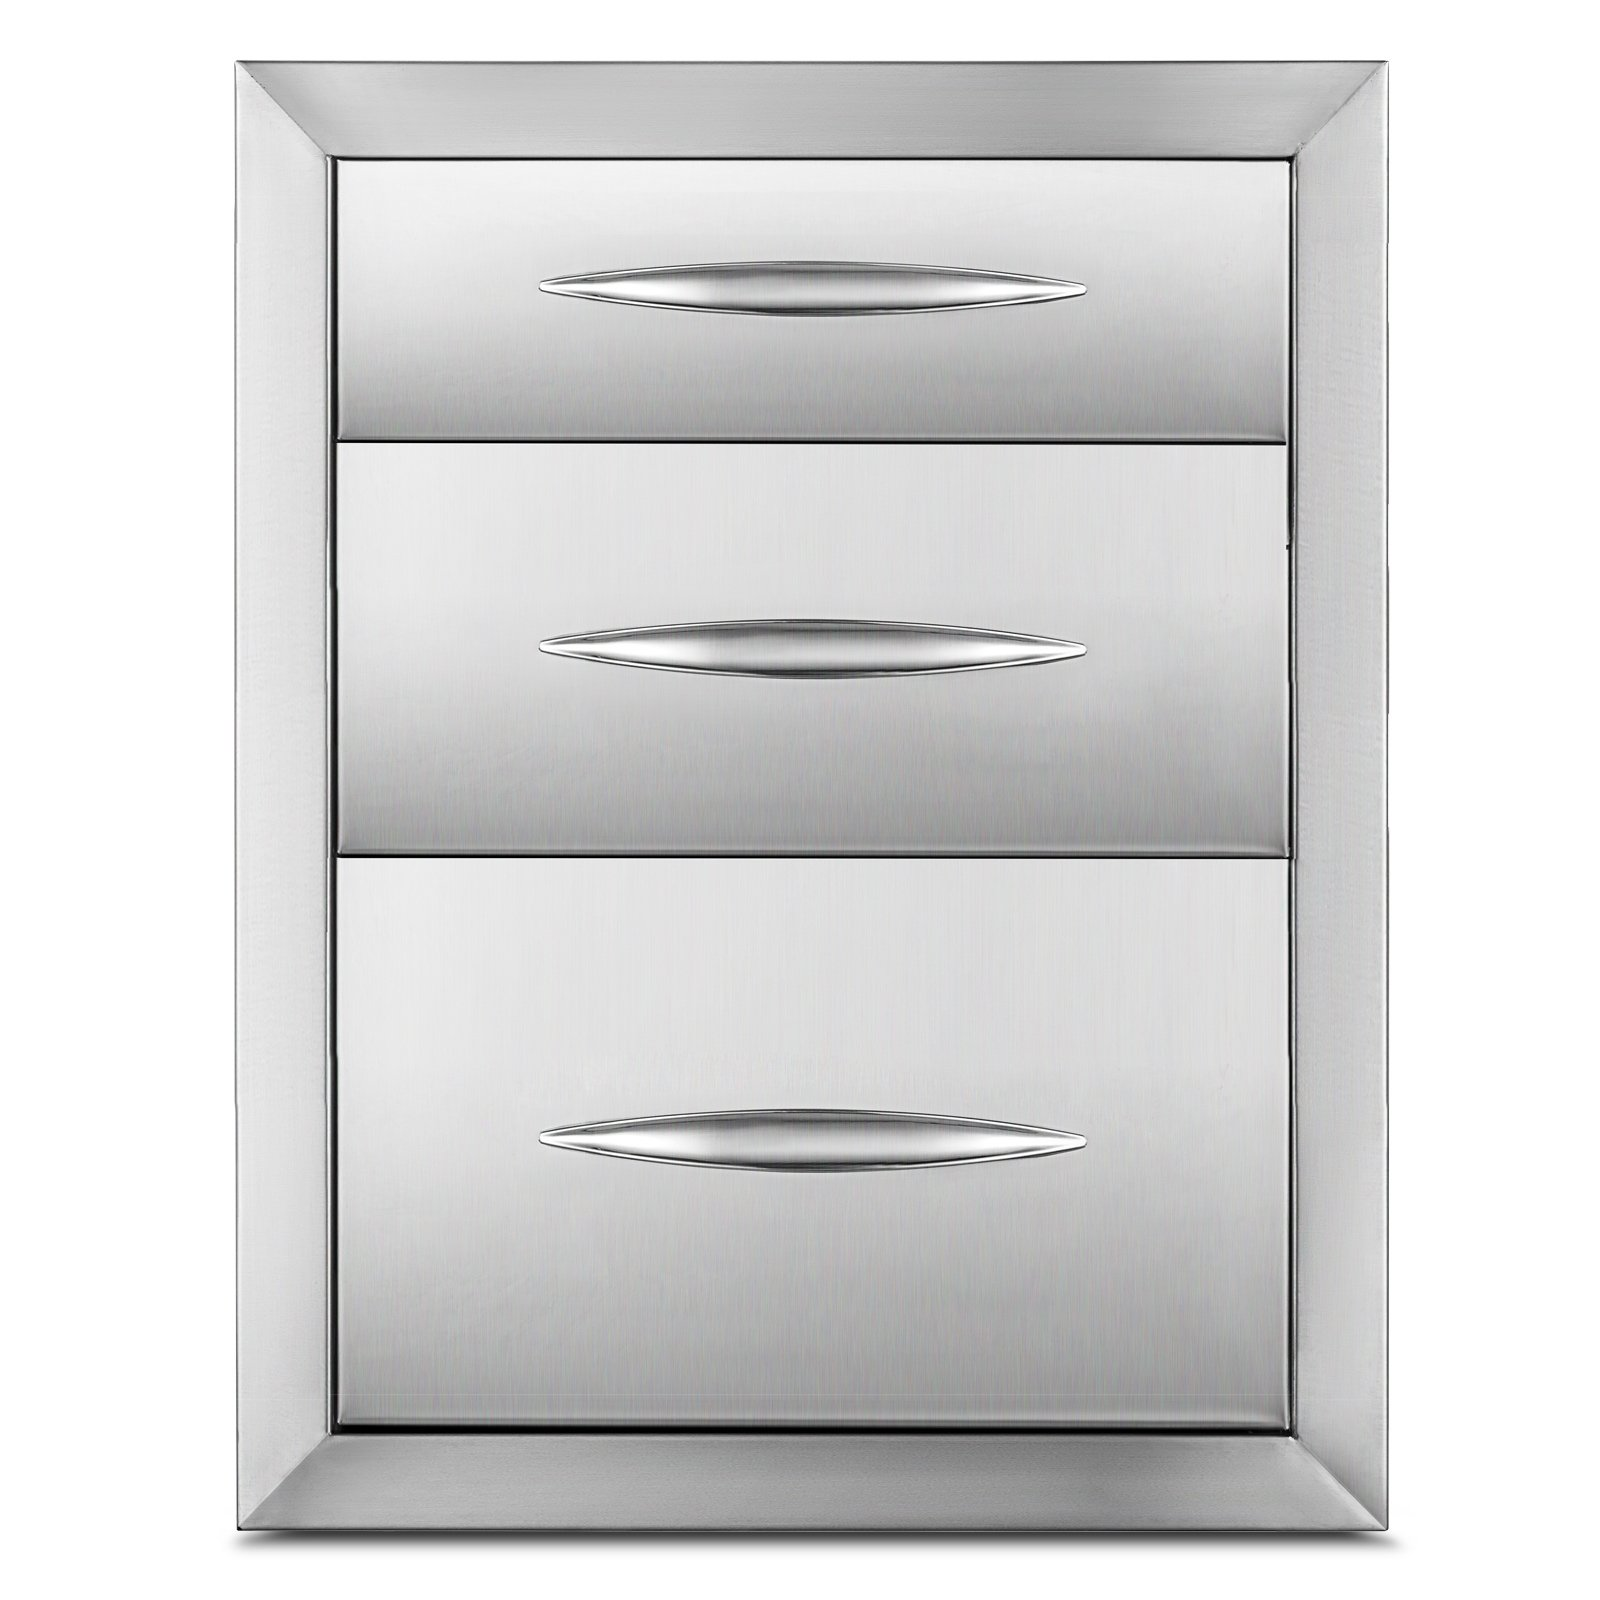 Happybuy Outdoor kitchen drawer 20.25''x14'' Stainless steel BBQ Island Drawer storage with Chrome Handle Triple Access Drawer Flush Mount Sliver Double Access Drawer (Outdoor kitchen drawer 20.25''x14'')